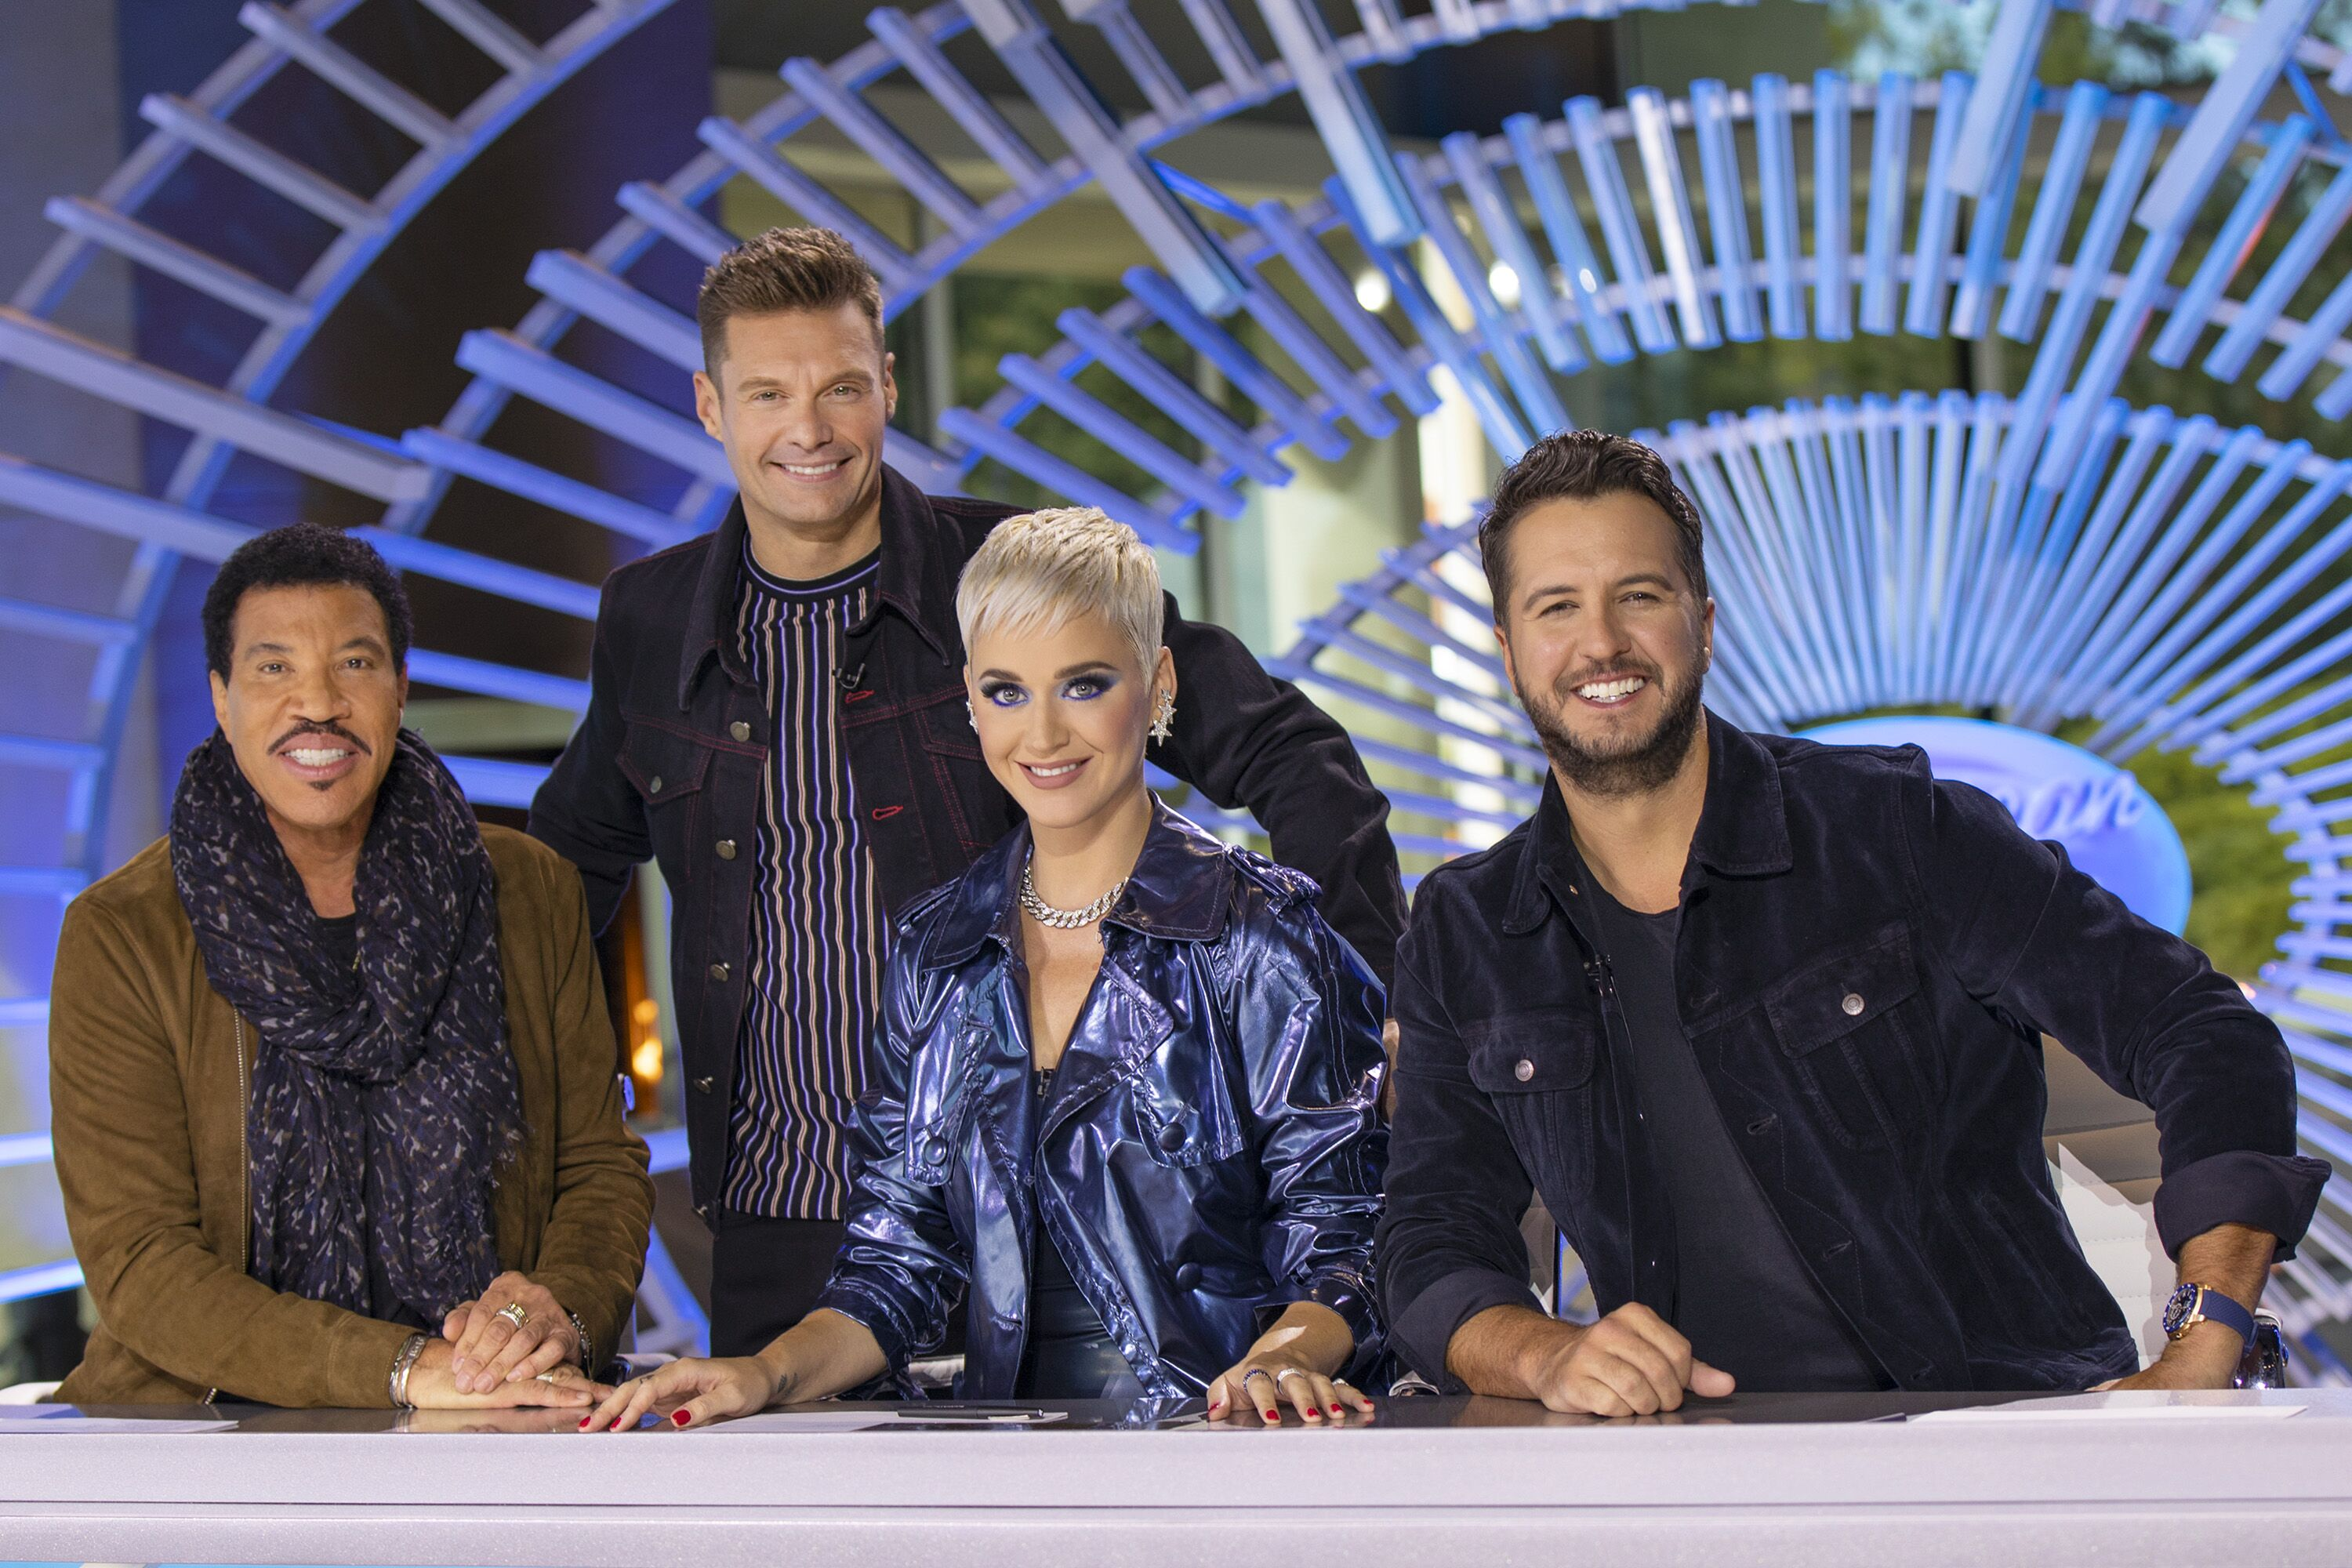 Lionel Richie, Ryan Seacrest, Katy Perry and Luke Bryan, American Idol| Photo: GettyImages